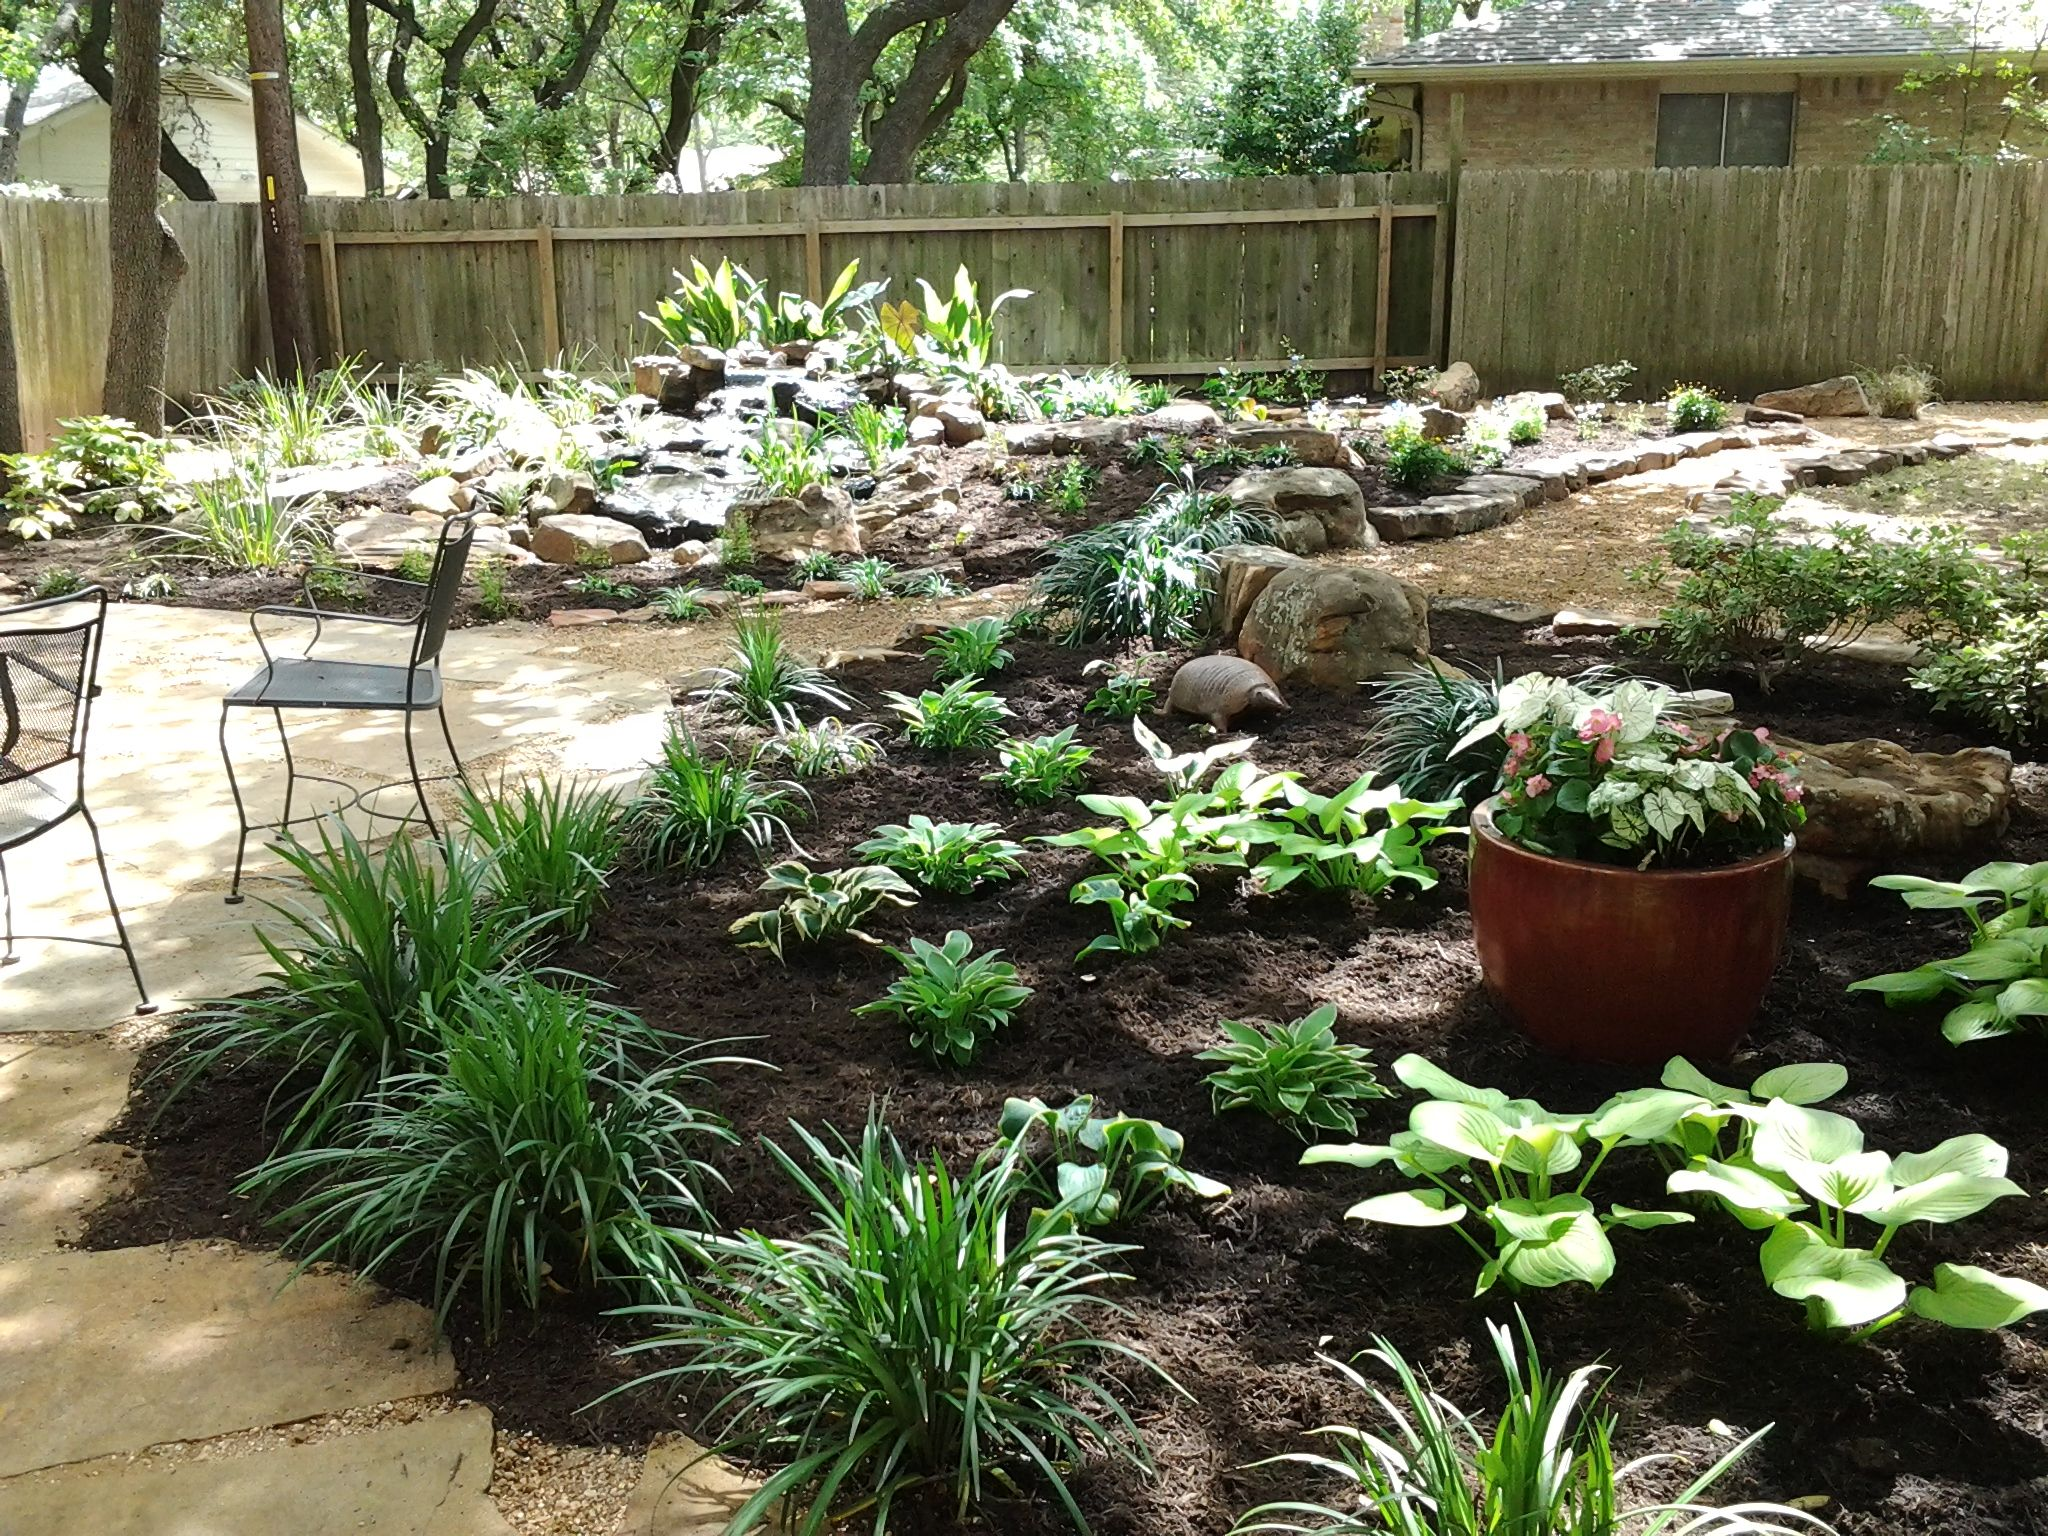 Shade Garden Design Ideas garden designs cool soothing shade Shade Garden With A Water Feature Yes Those Are Hostas In Austin Set In And